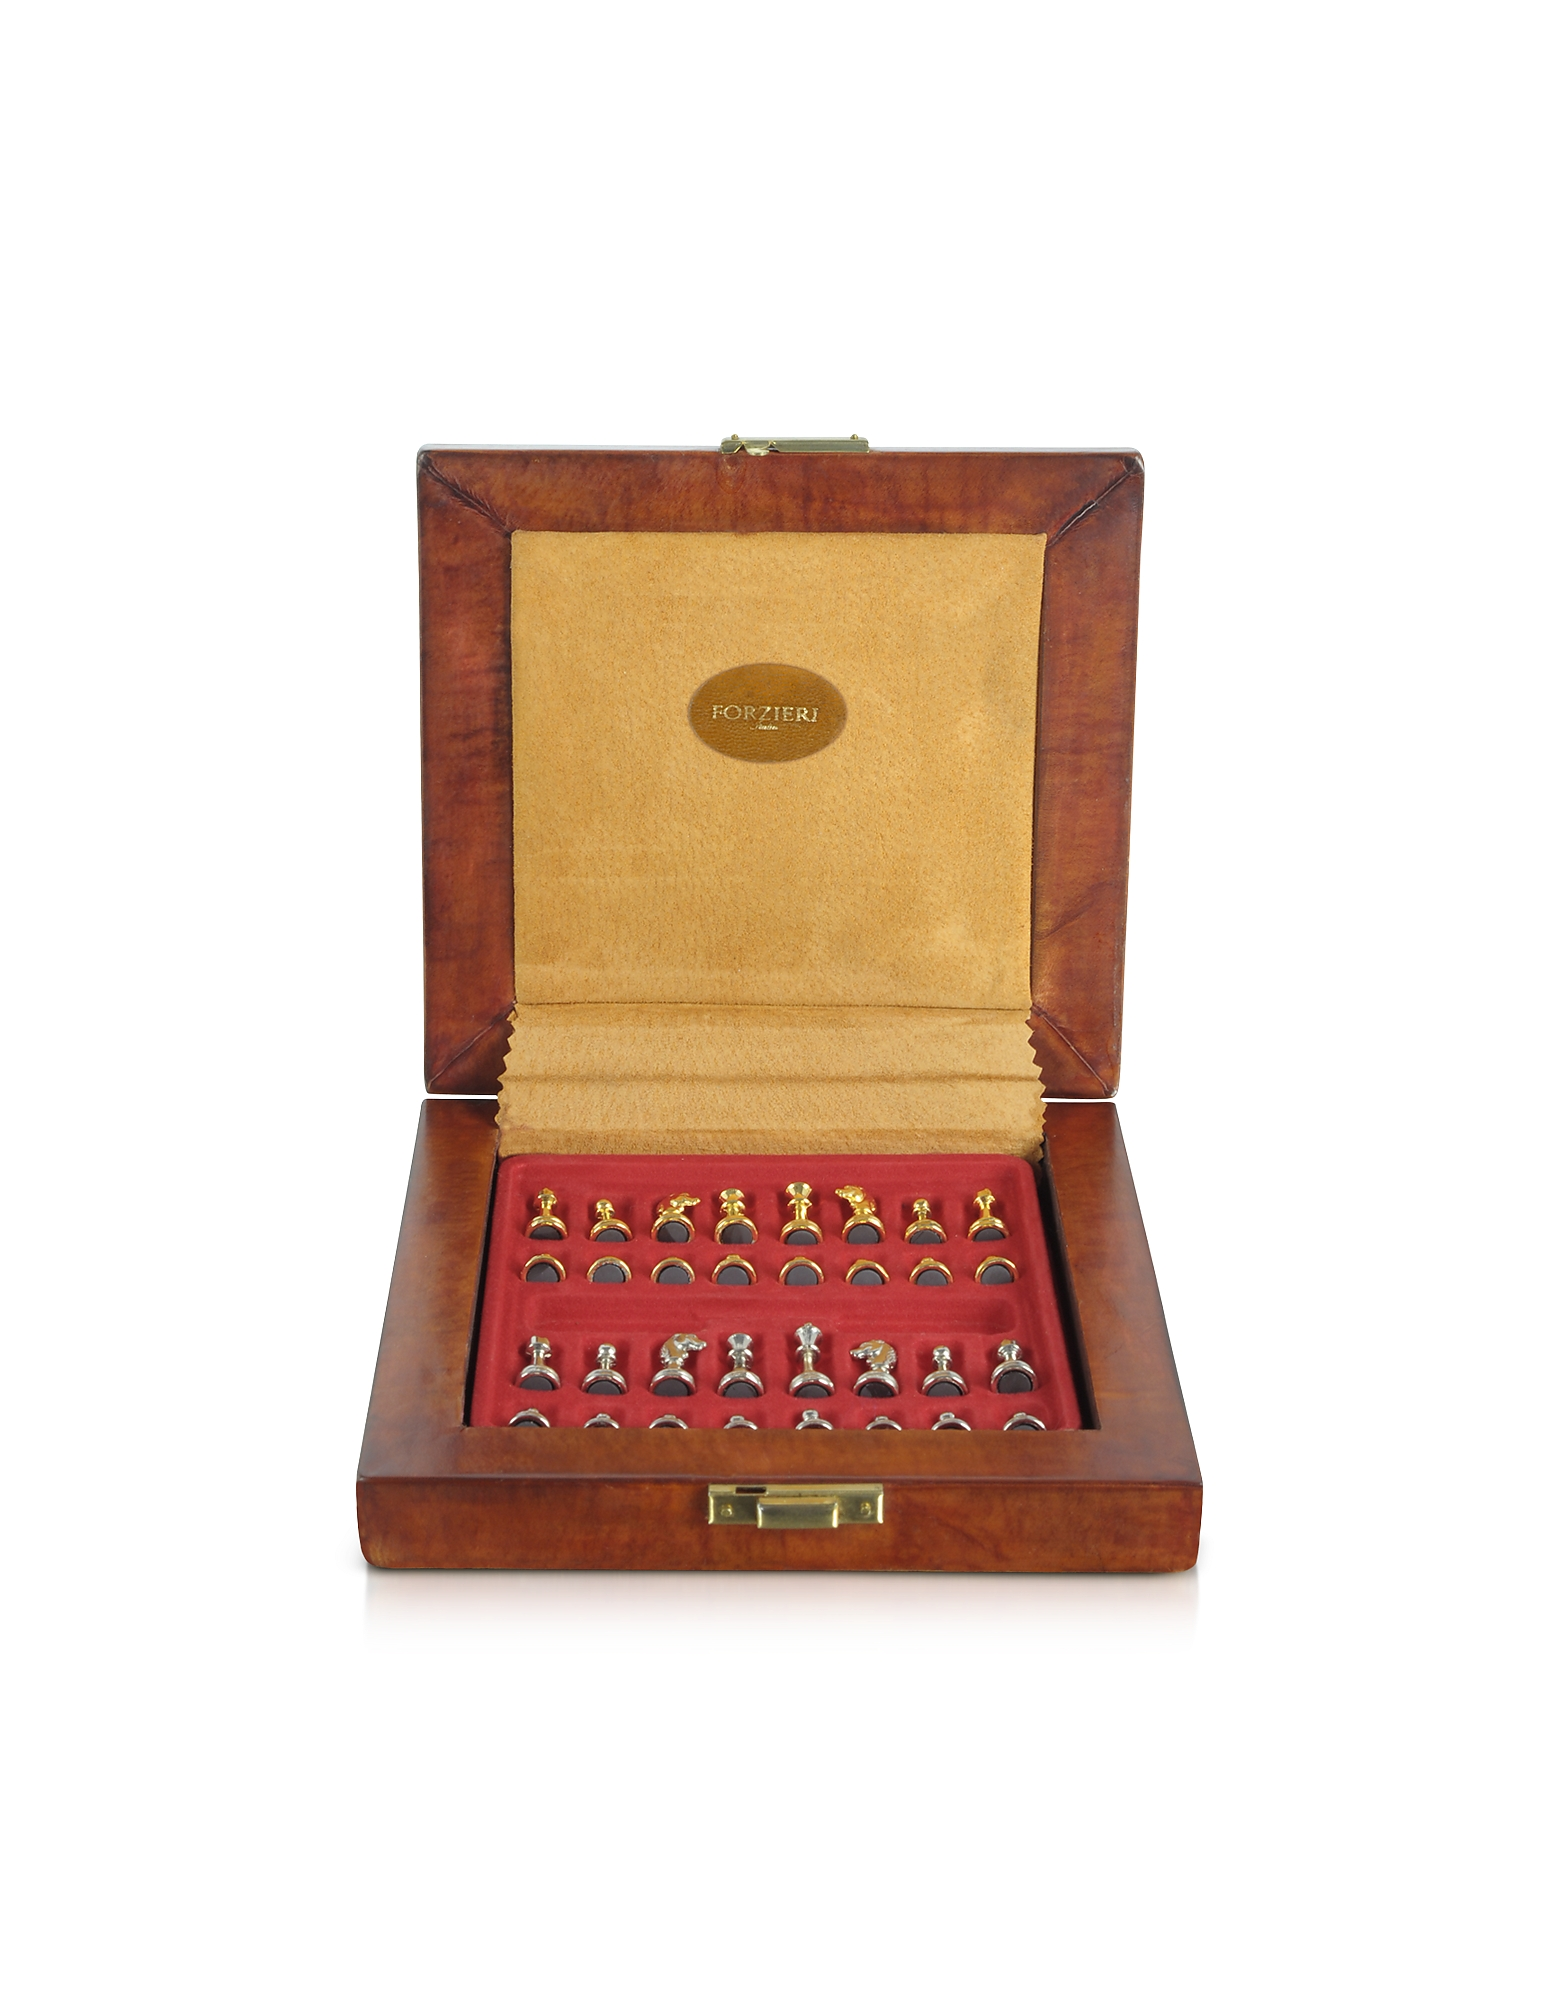 Genuine Leather Chess Board with Magnetic Pieces